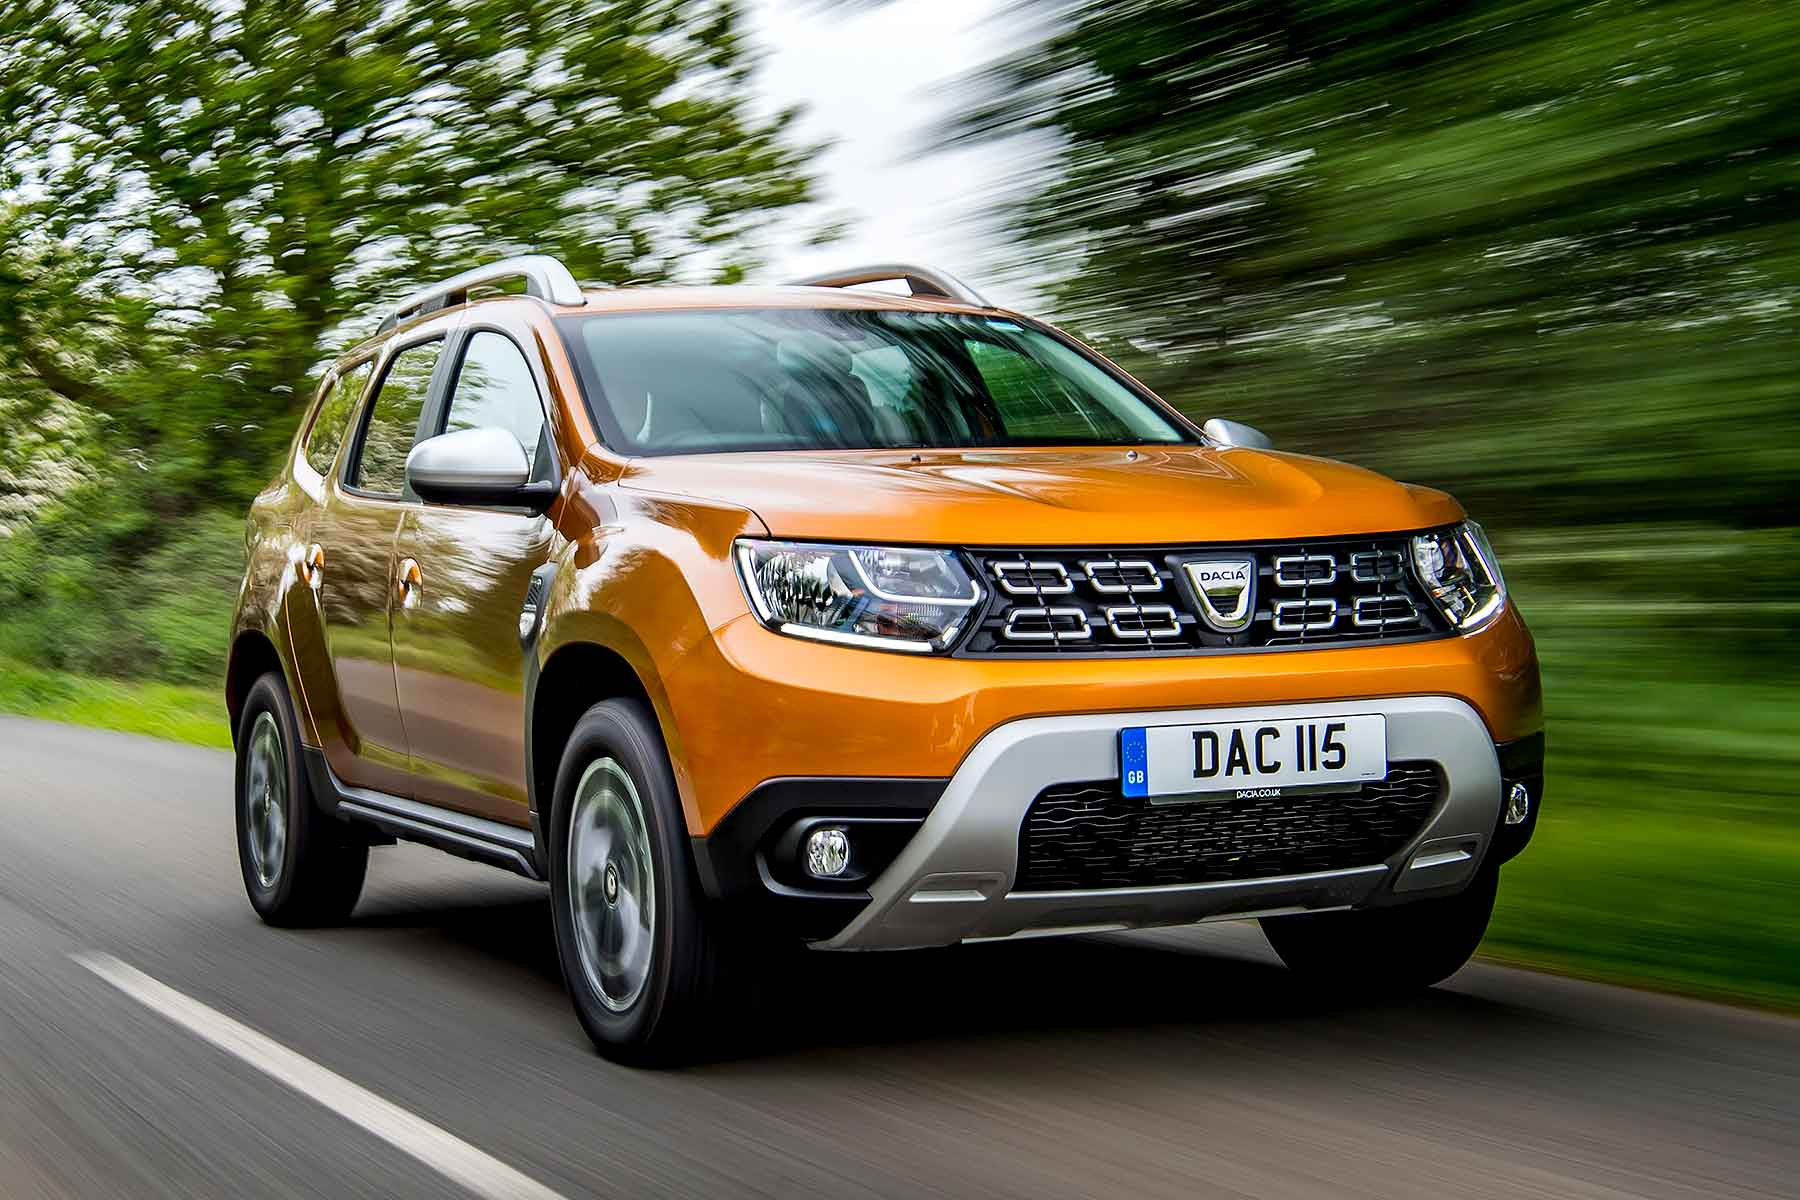 new 2018 dacia duster prices confirmed from 9 995. Black Bedroom Furniture Sets. Home Design Ideas